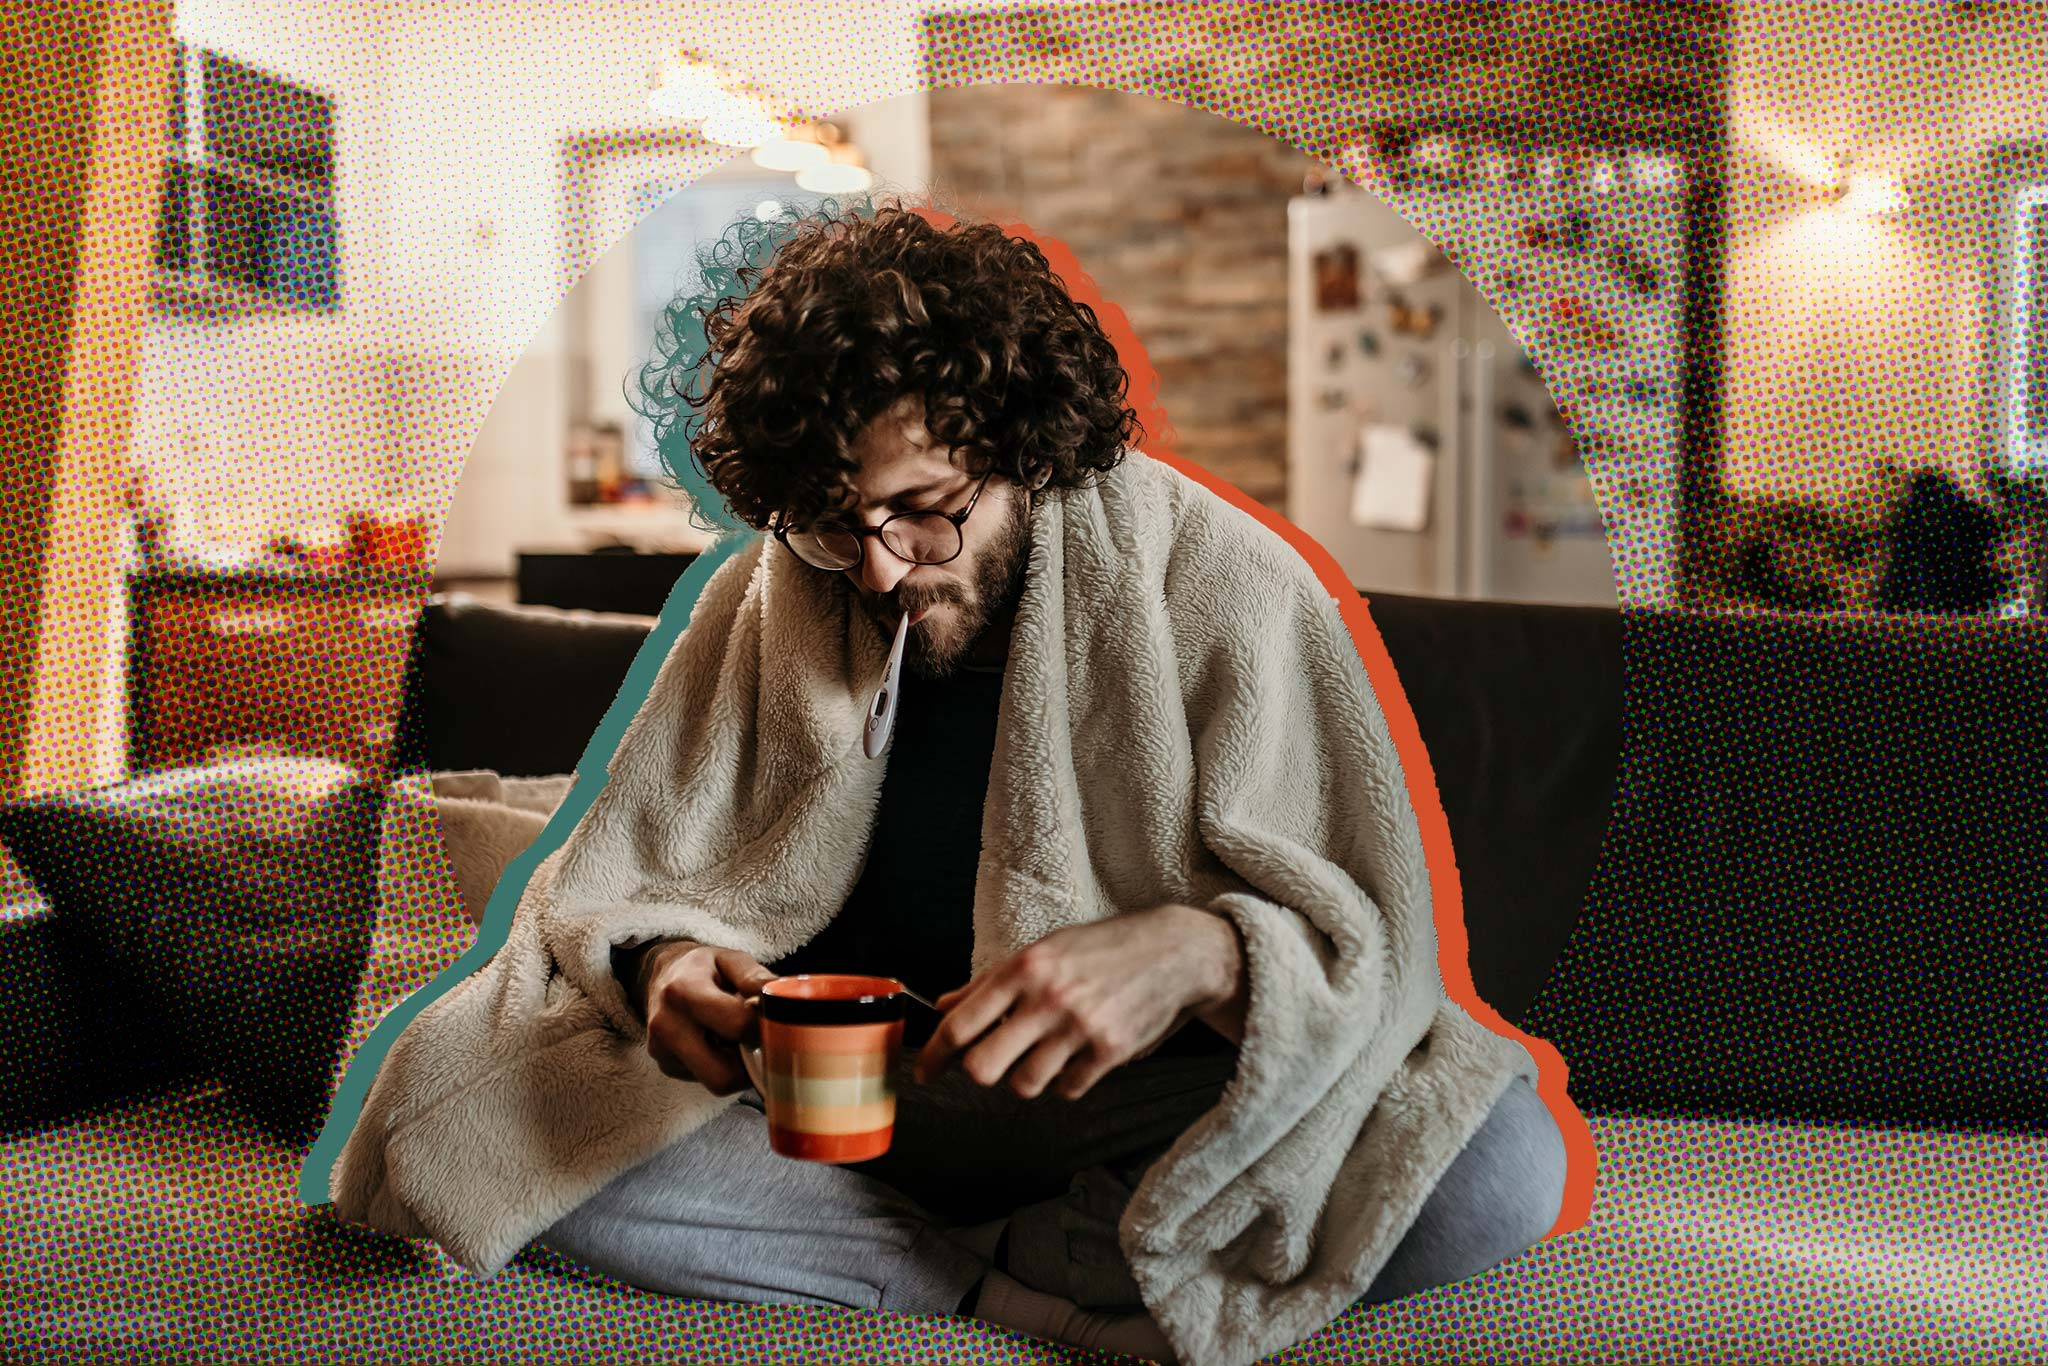 Image of a sick student at home, wearing a blanket and drinking tea